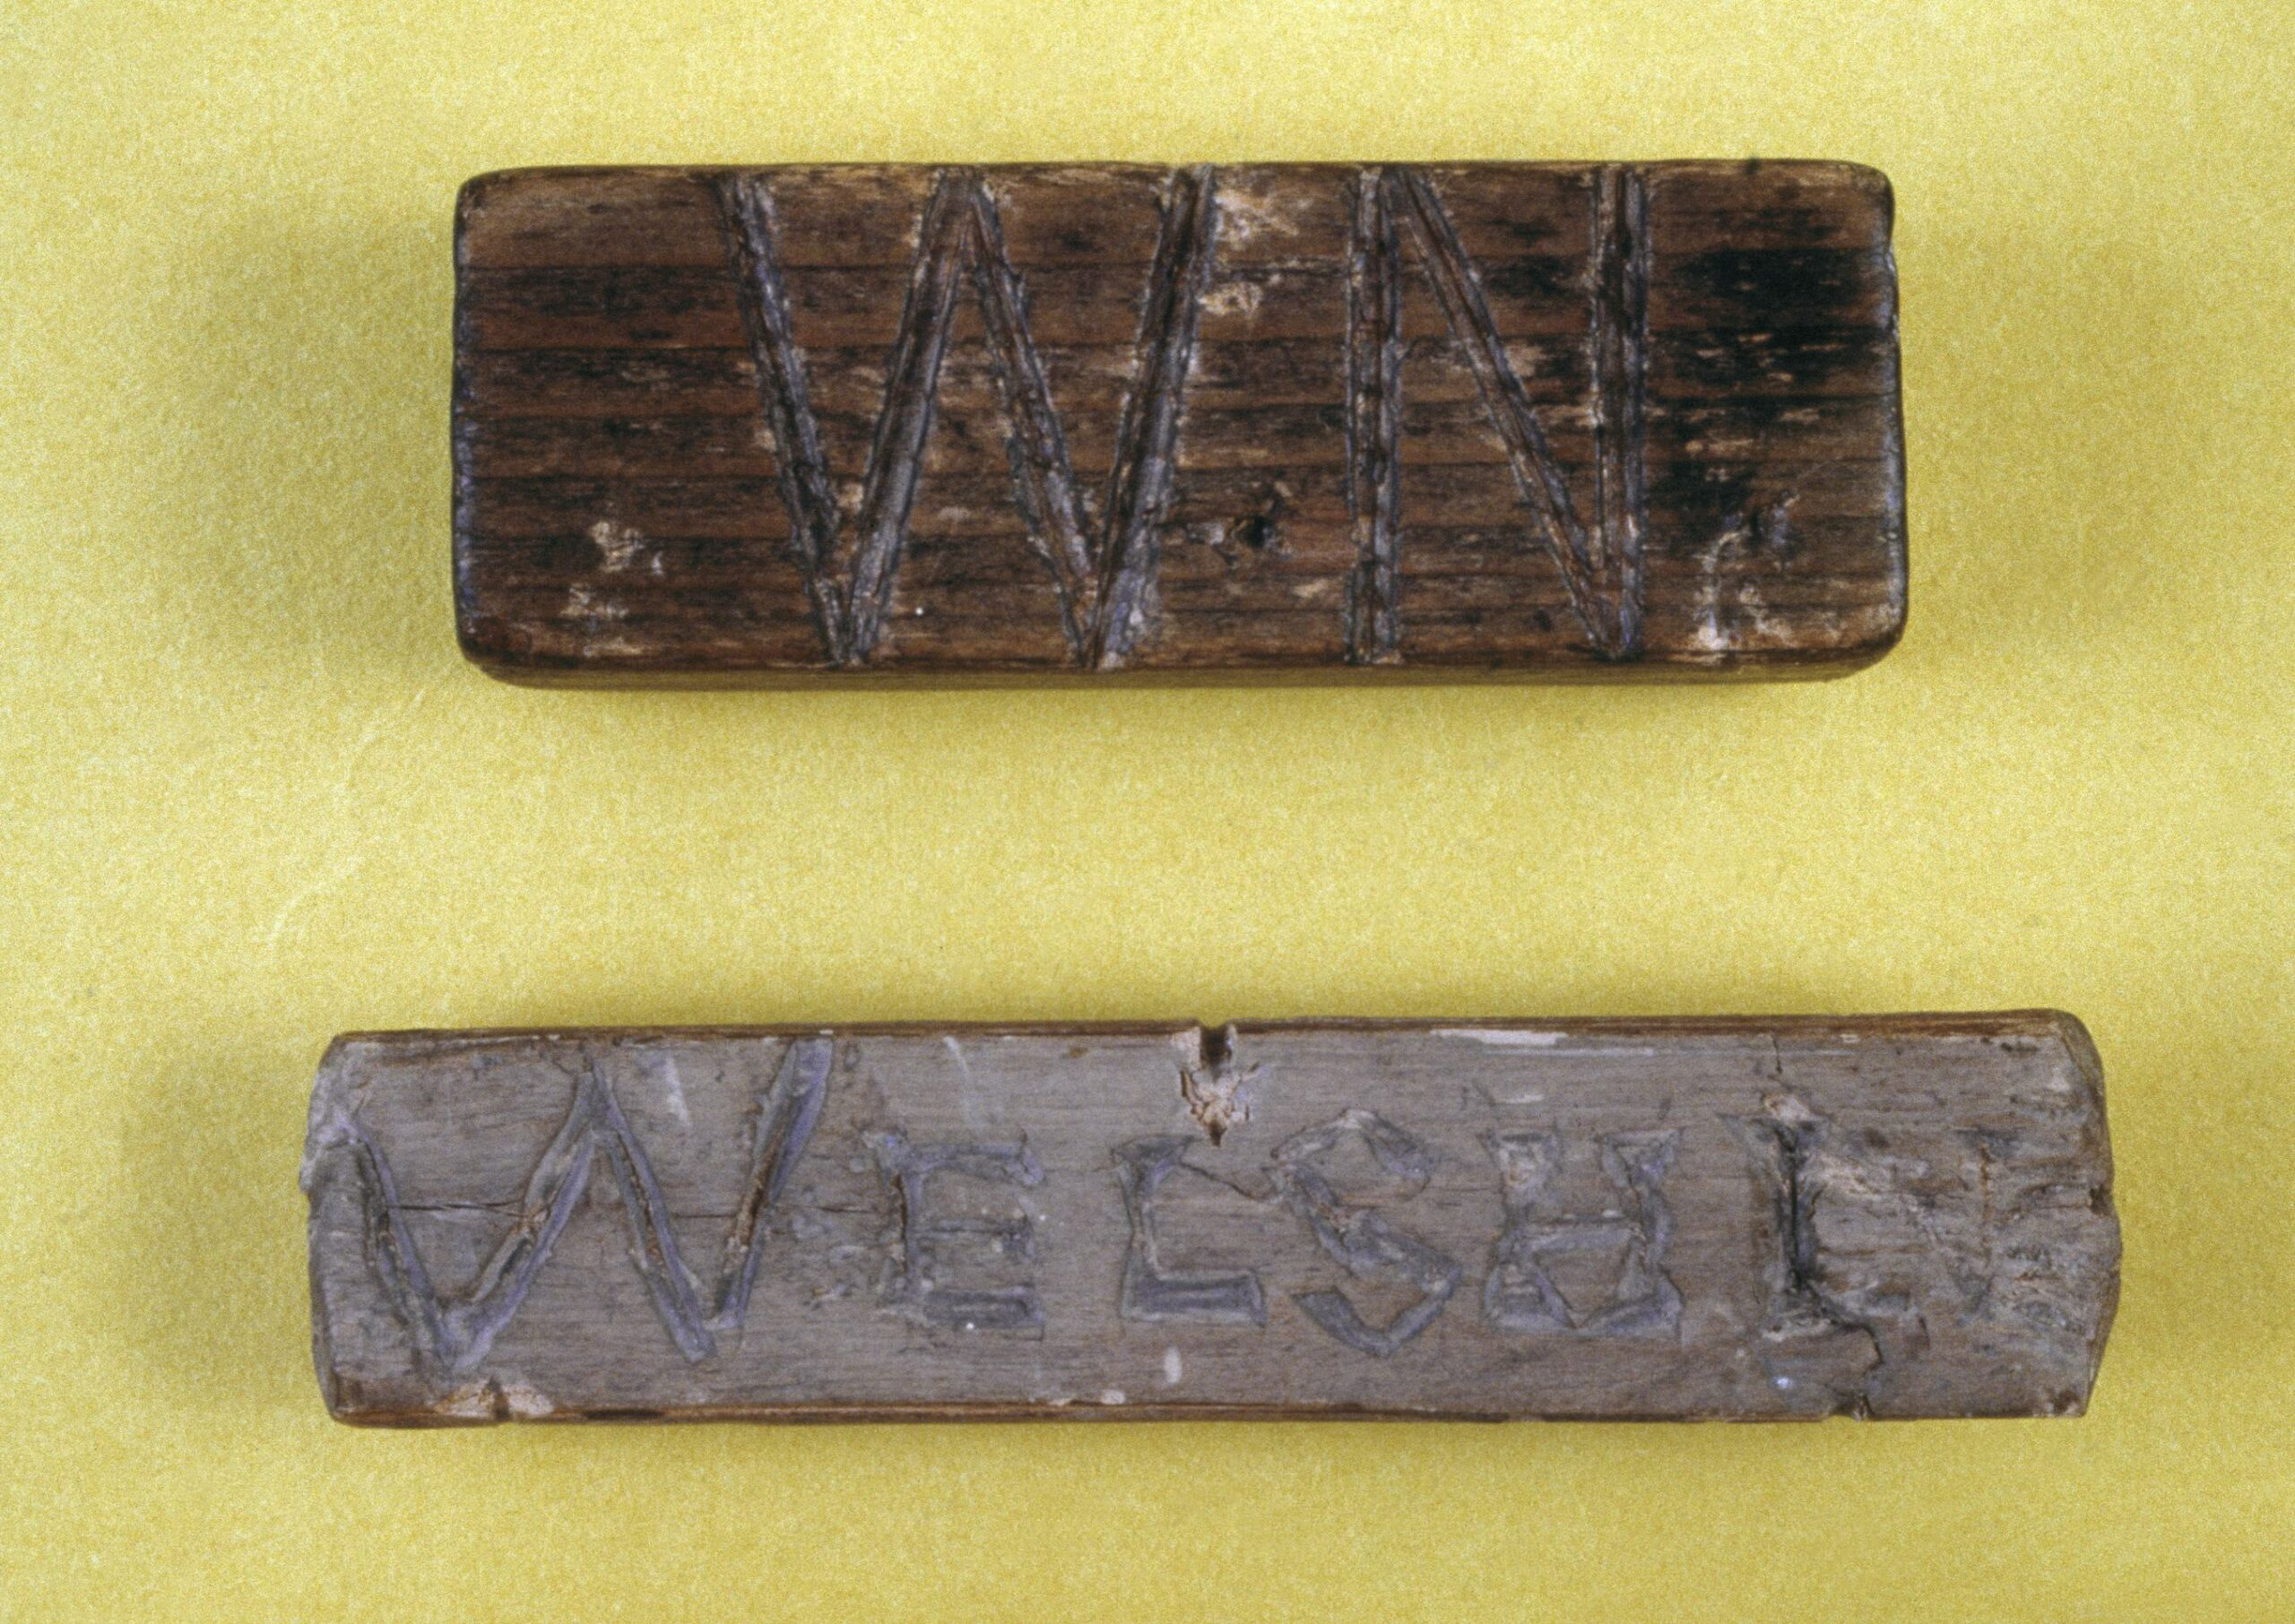 This image shows two dated old wooden planks on a yellow surface. reading 'WN' meaning Welsh Not.